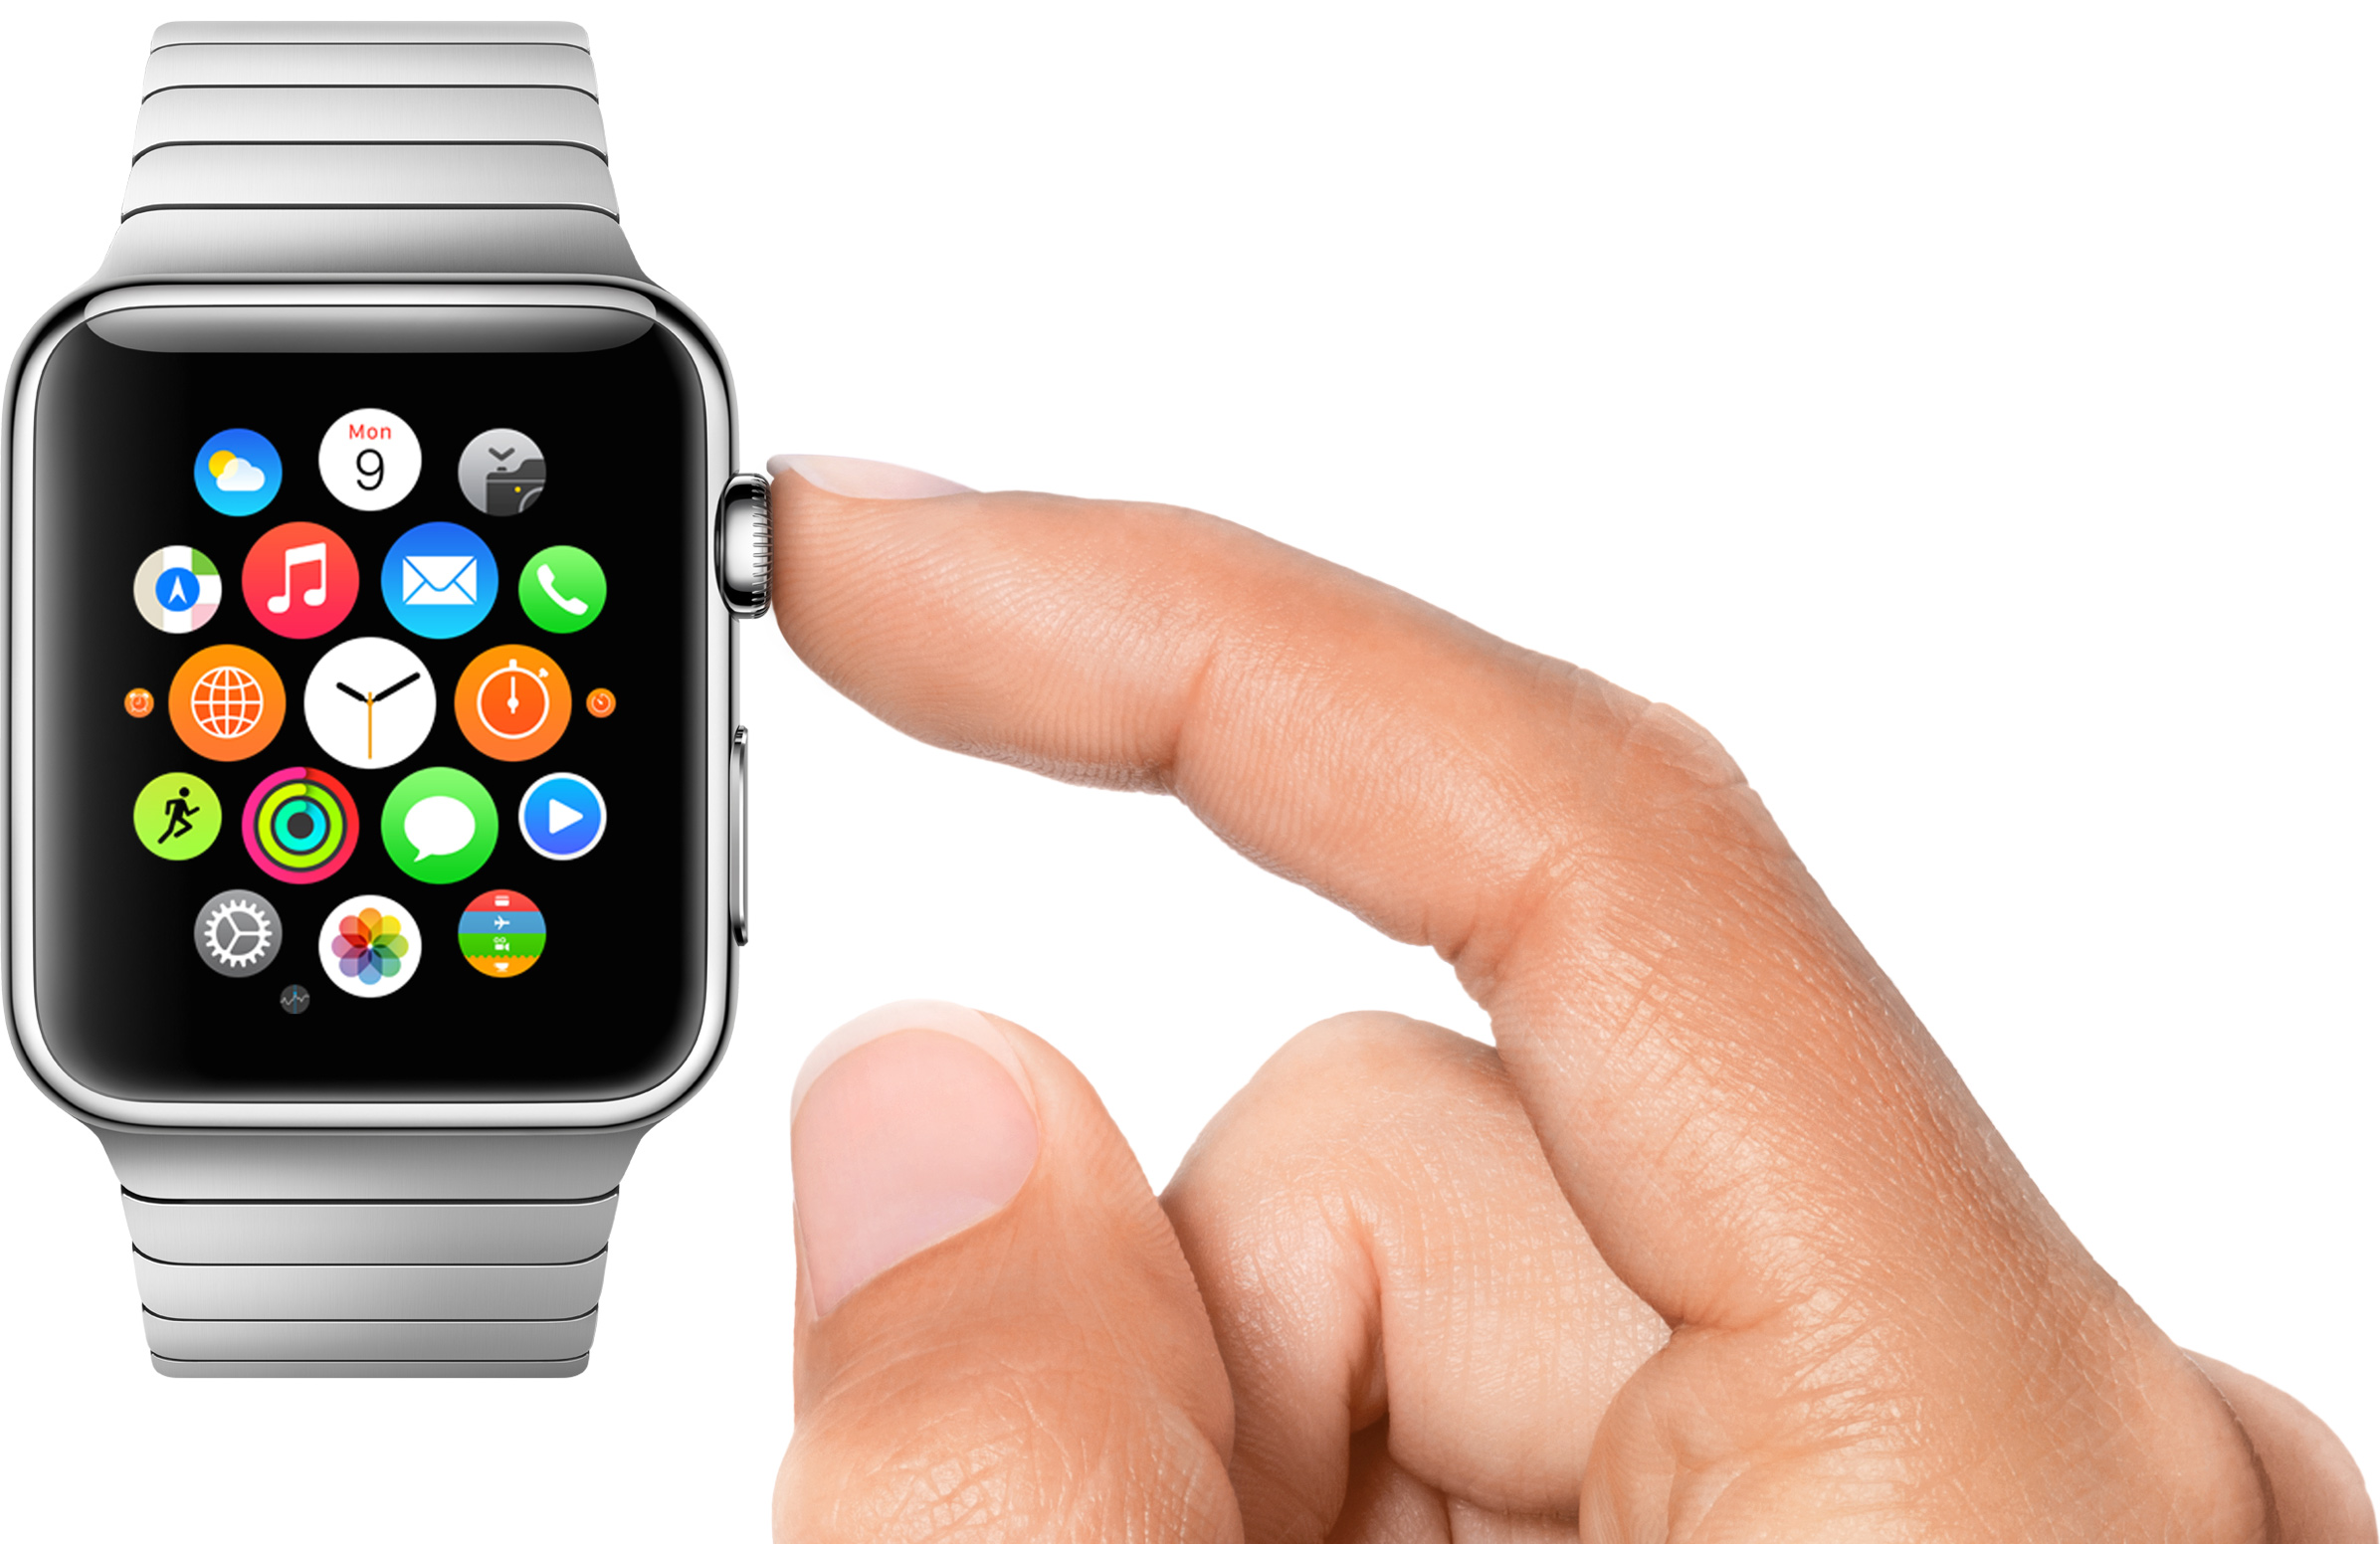 Apple Watch Digital Crown press